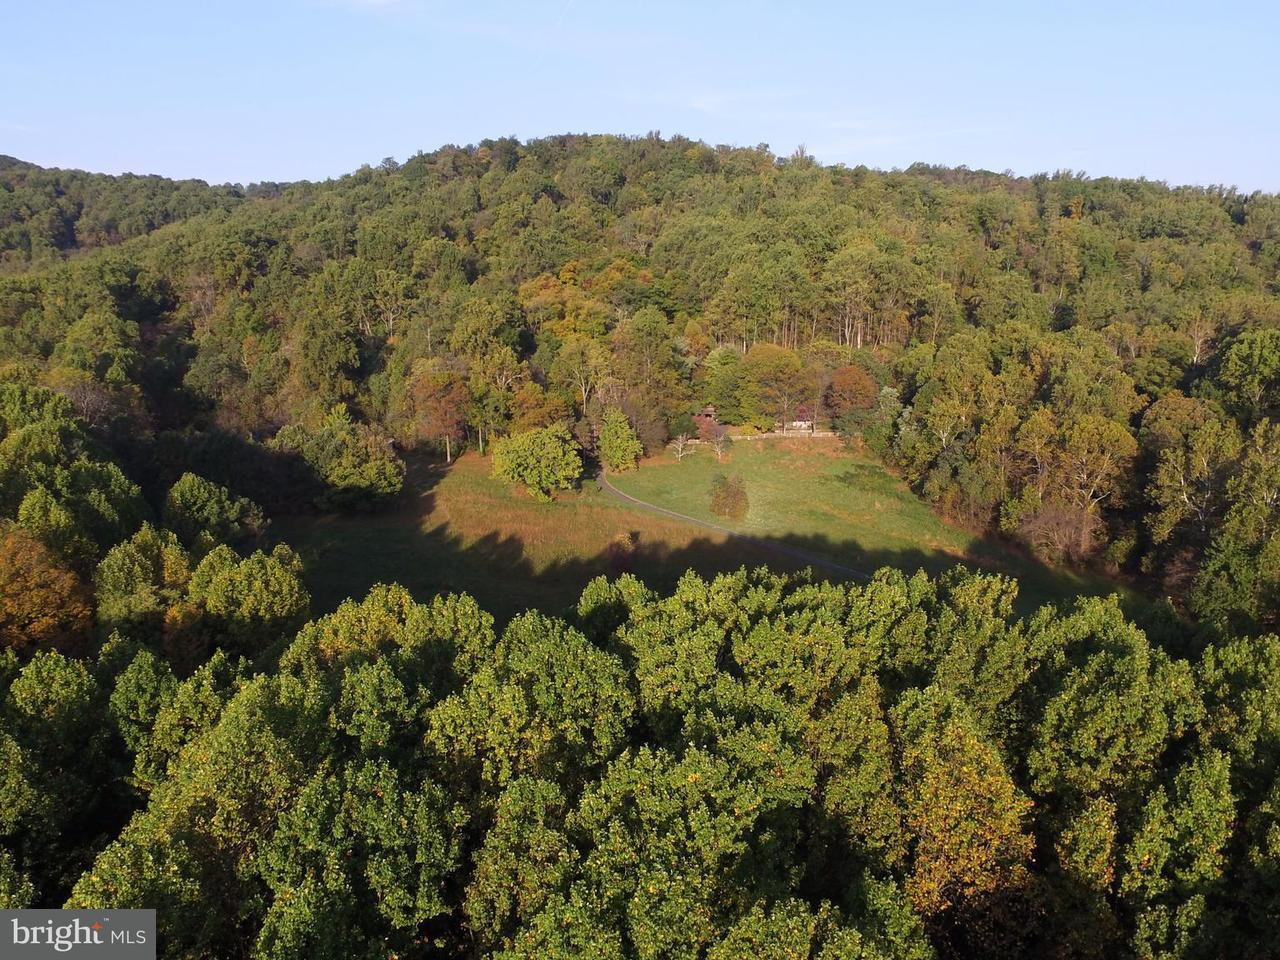 Land for Sale at Moss Hollow Road Moss Hollow Road Markham, Virginia 22643 United States